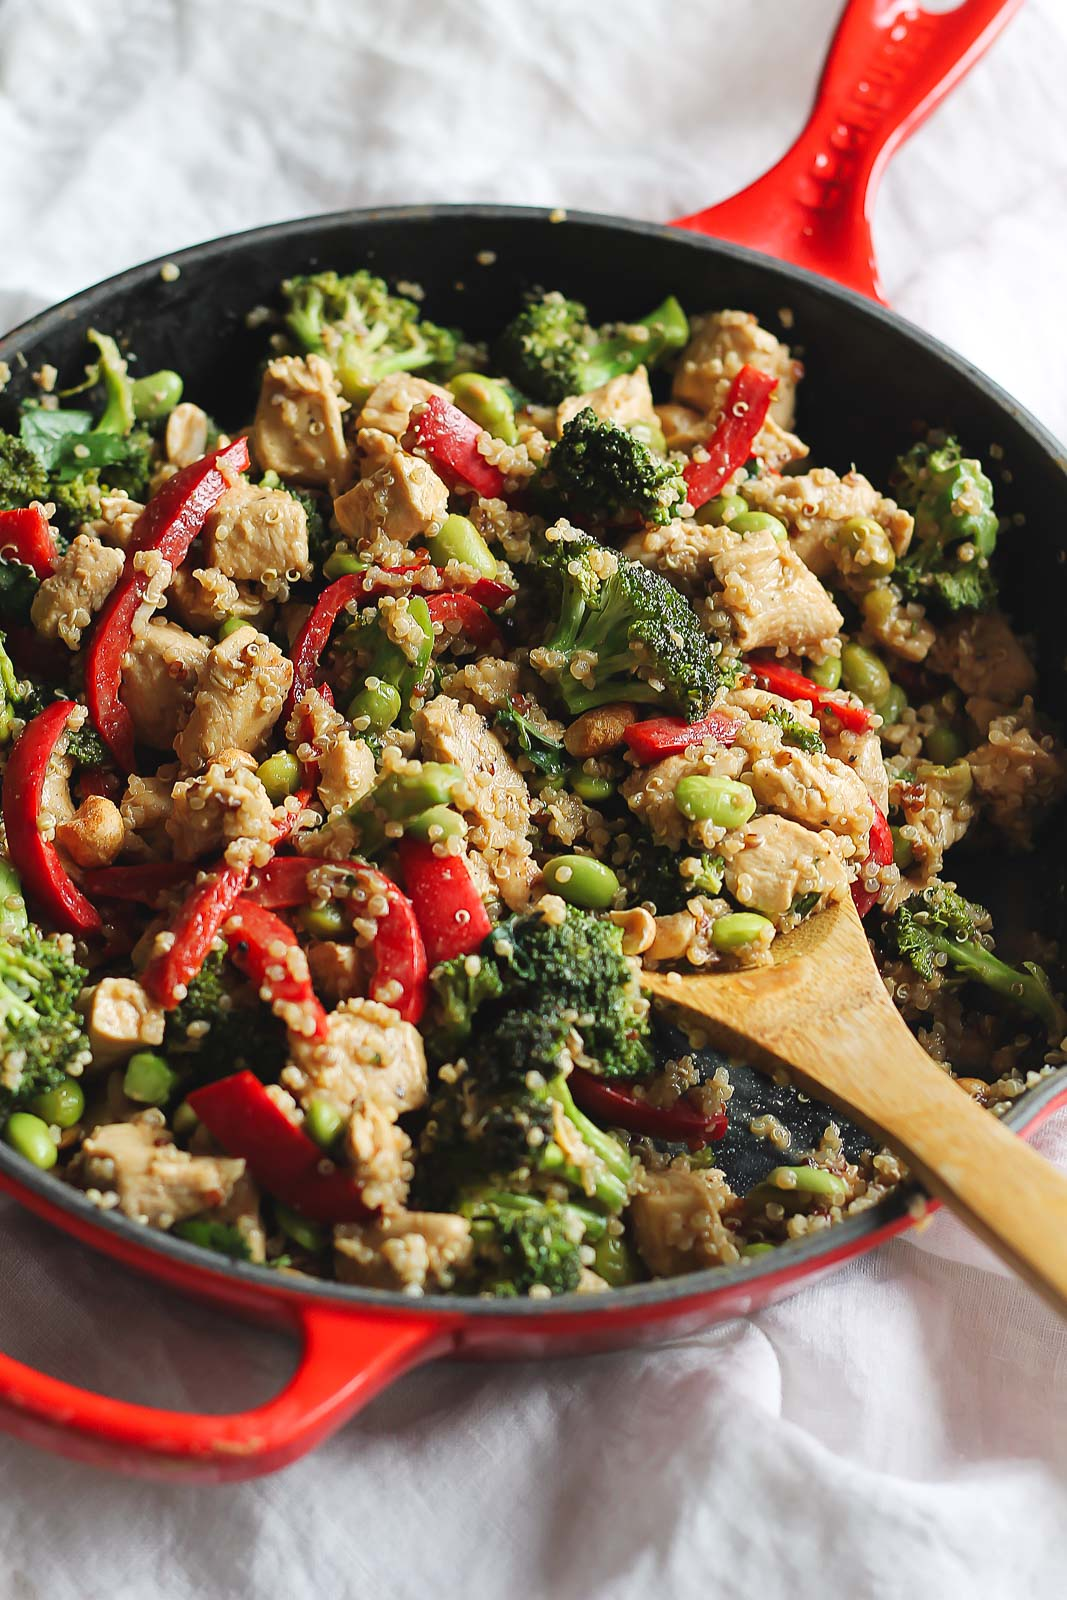 one pan meals: chicken, broccoli, red pepper, and edamame in a red skillet with a wooden spoon